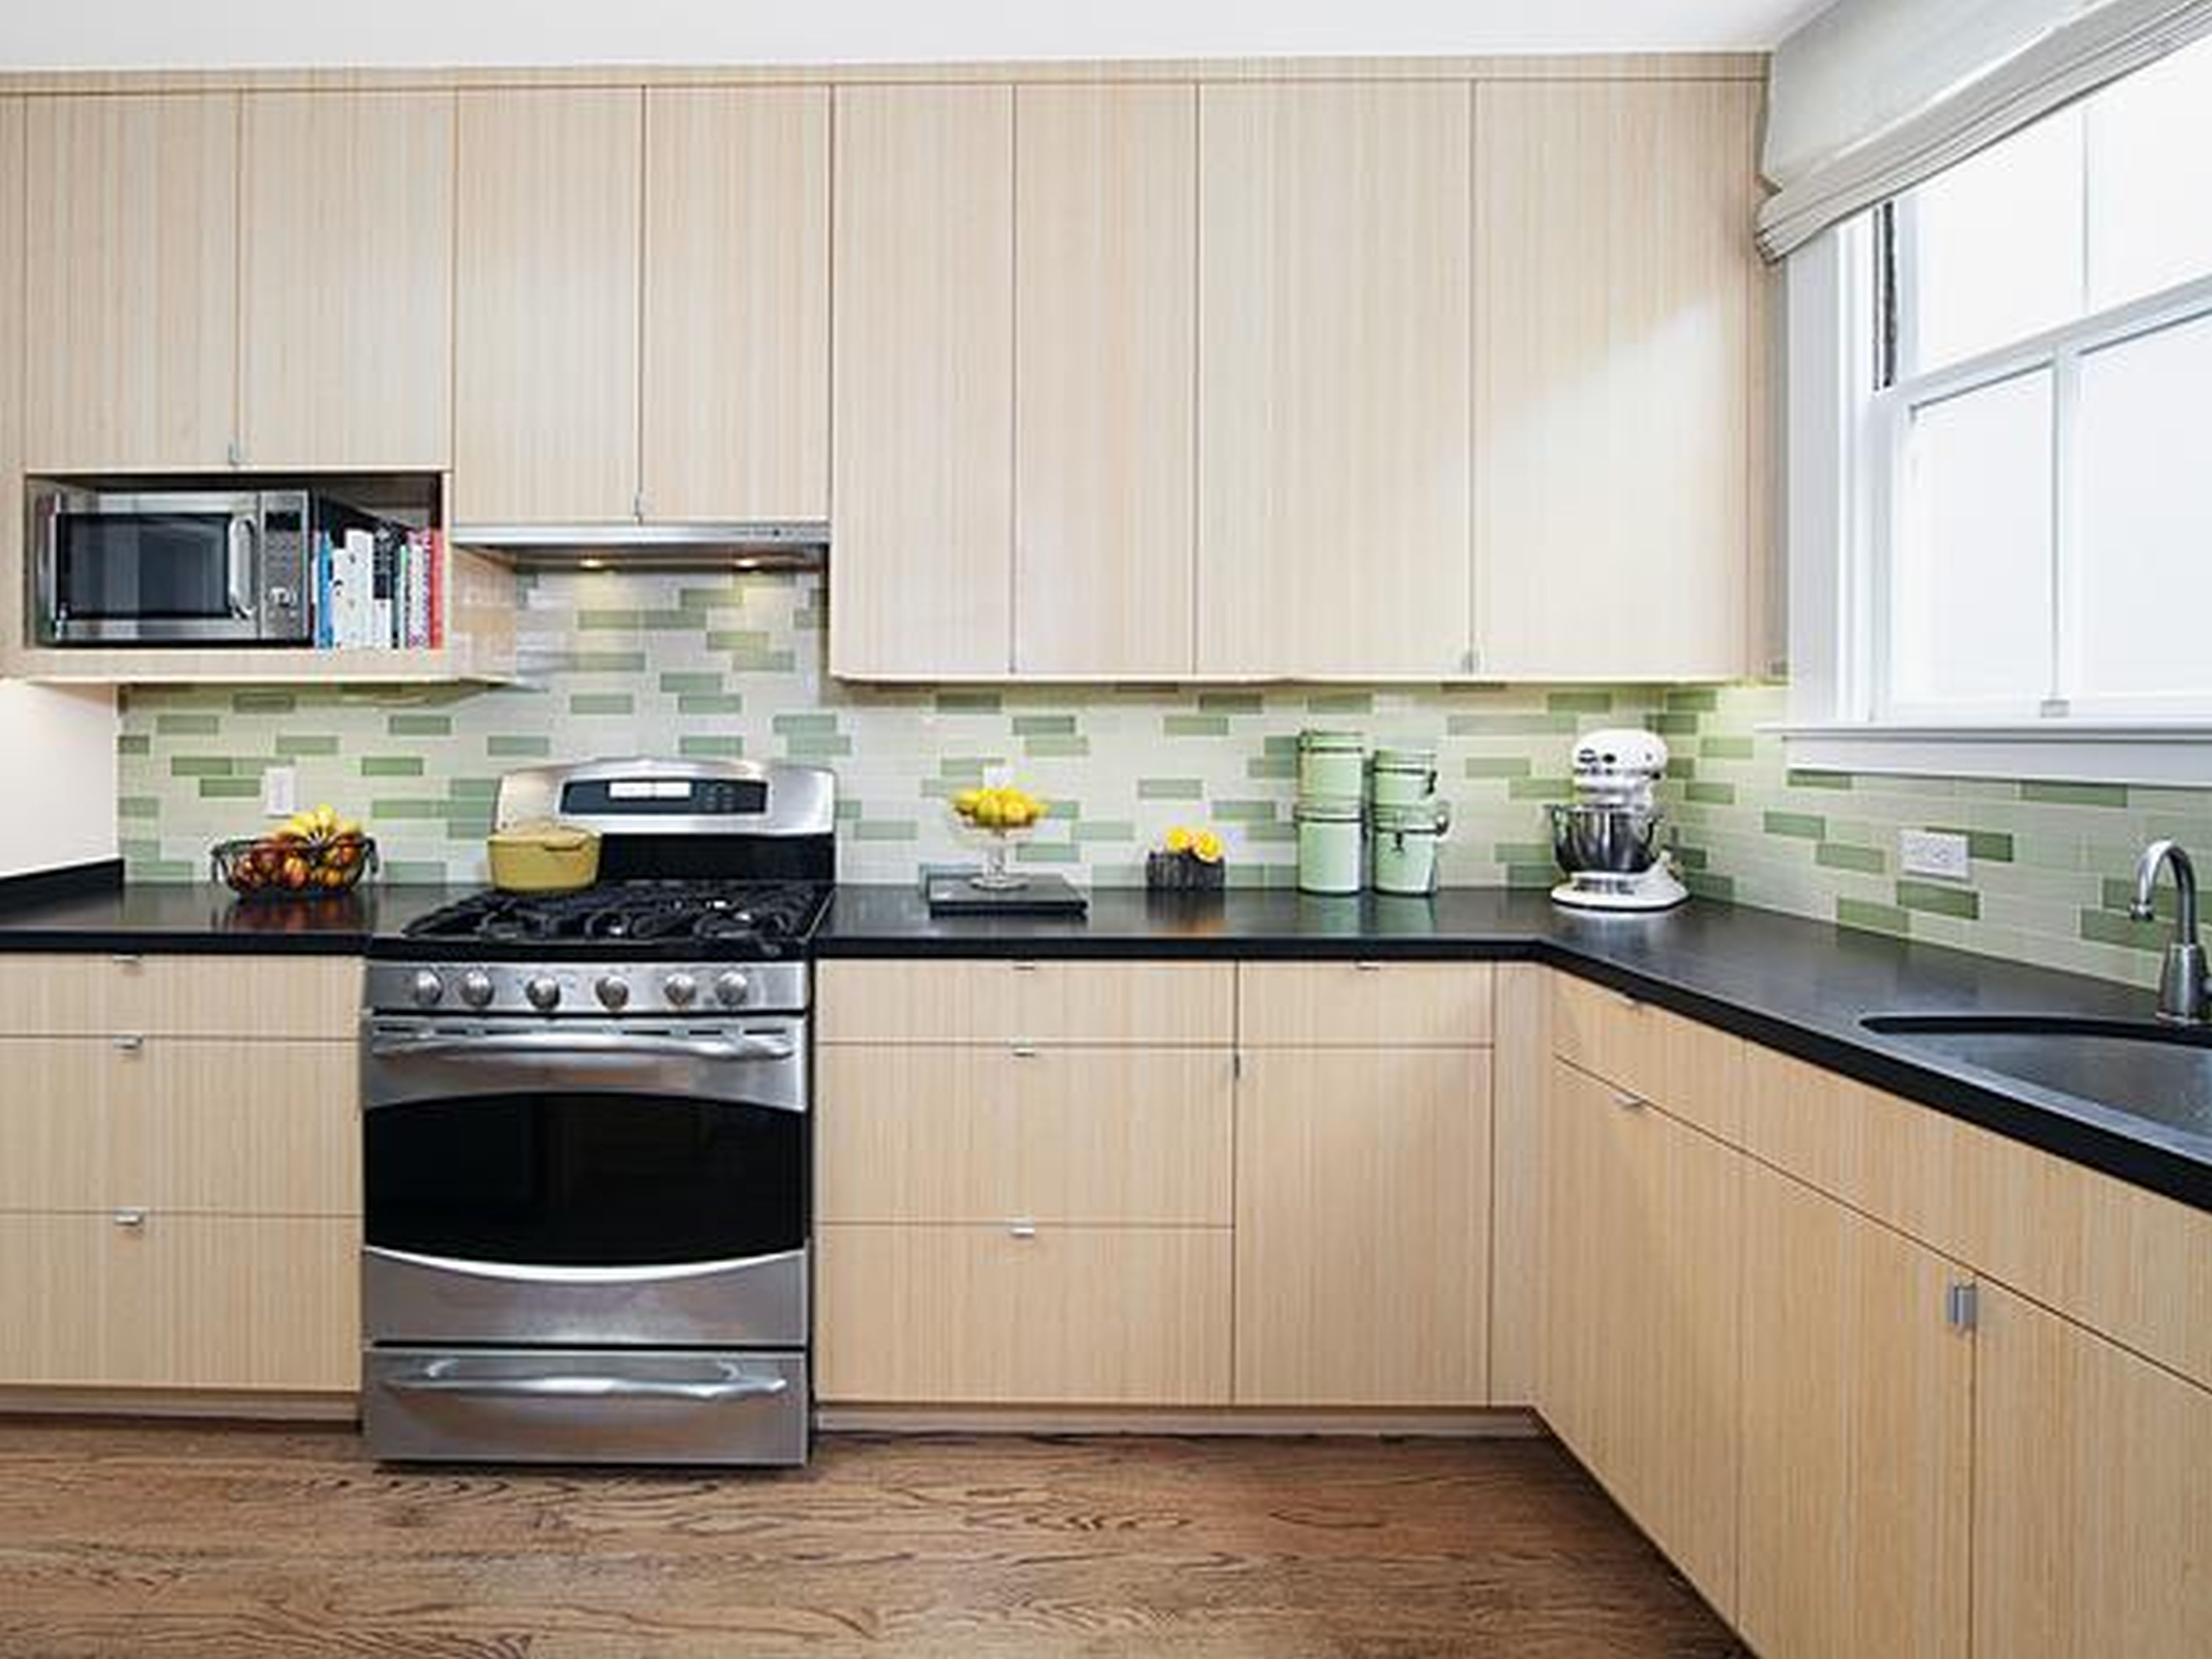 Tiles for Kitchen Back Splash: A Solution for Natural and ...